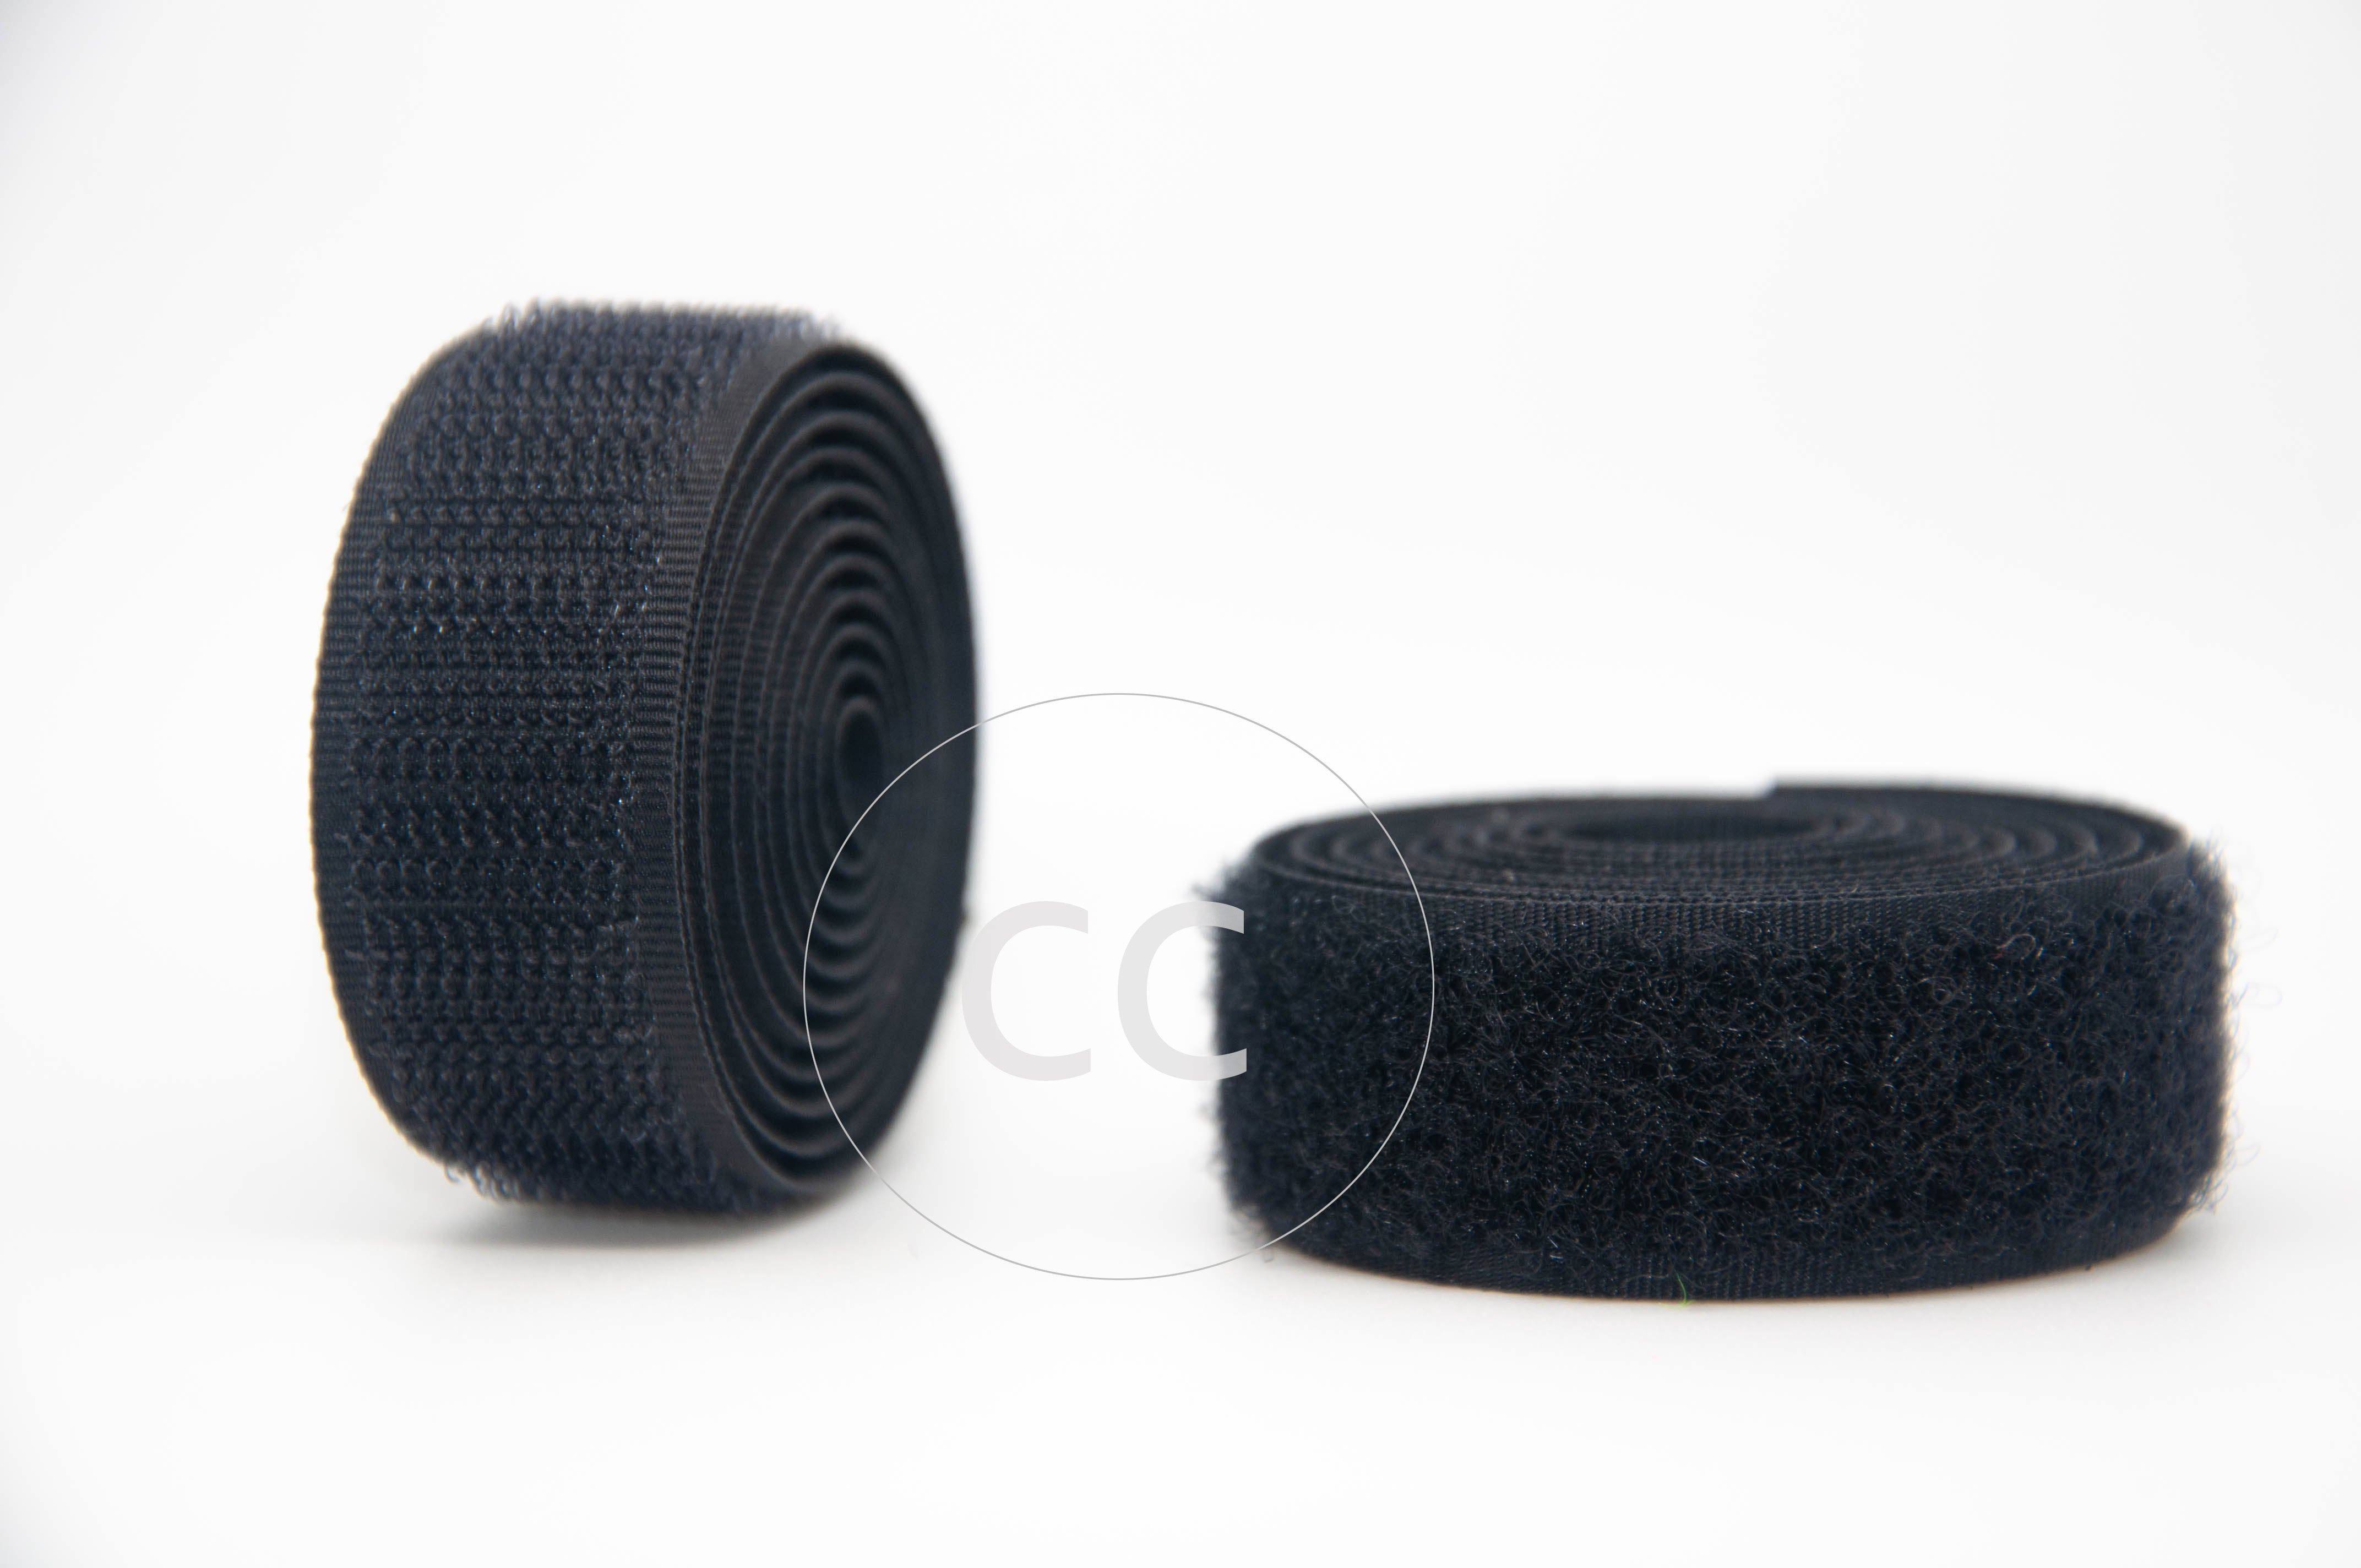 Black Sew-on Hook & Loop tape Alfatex® Brand supplied by the Velcro Companies